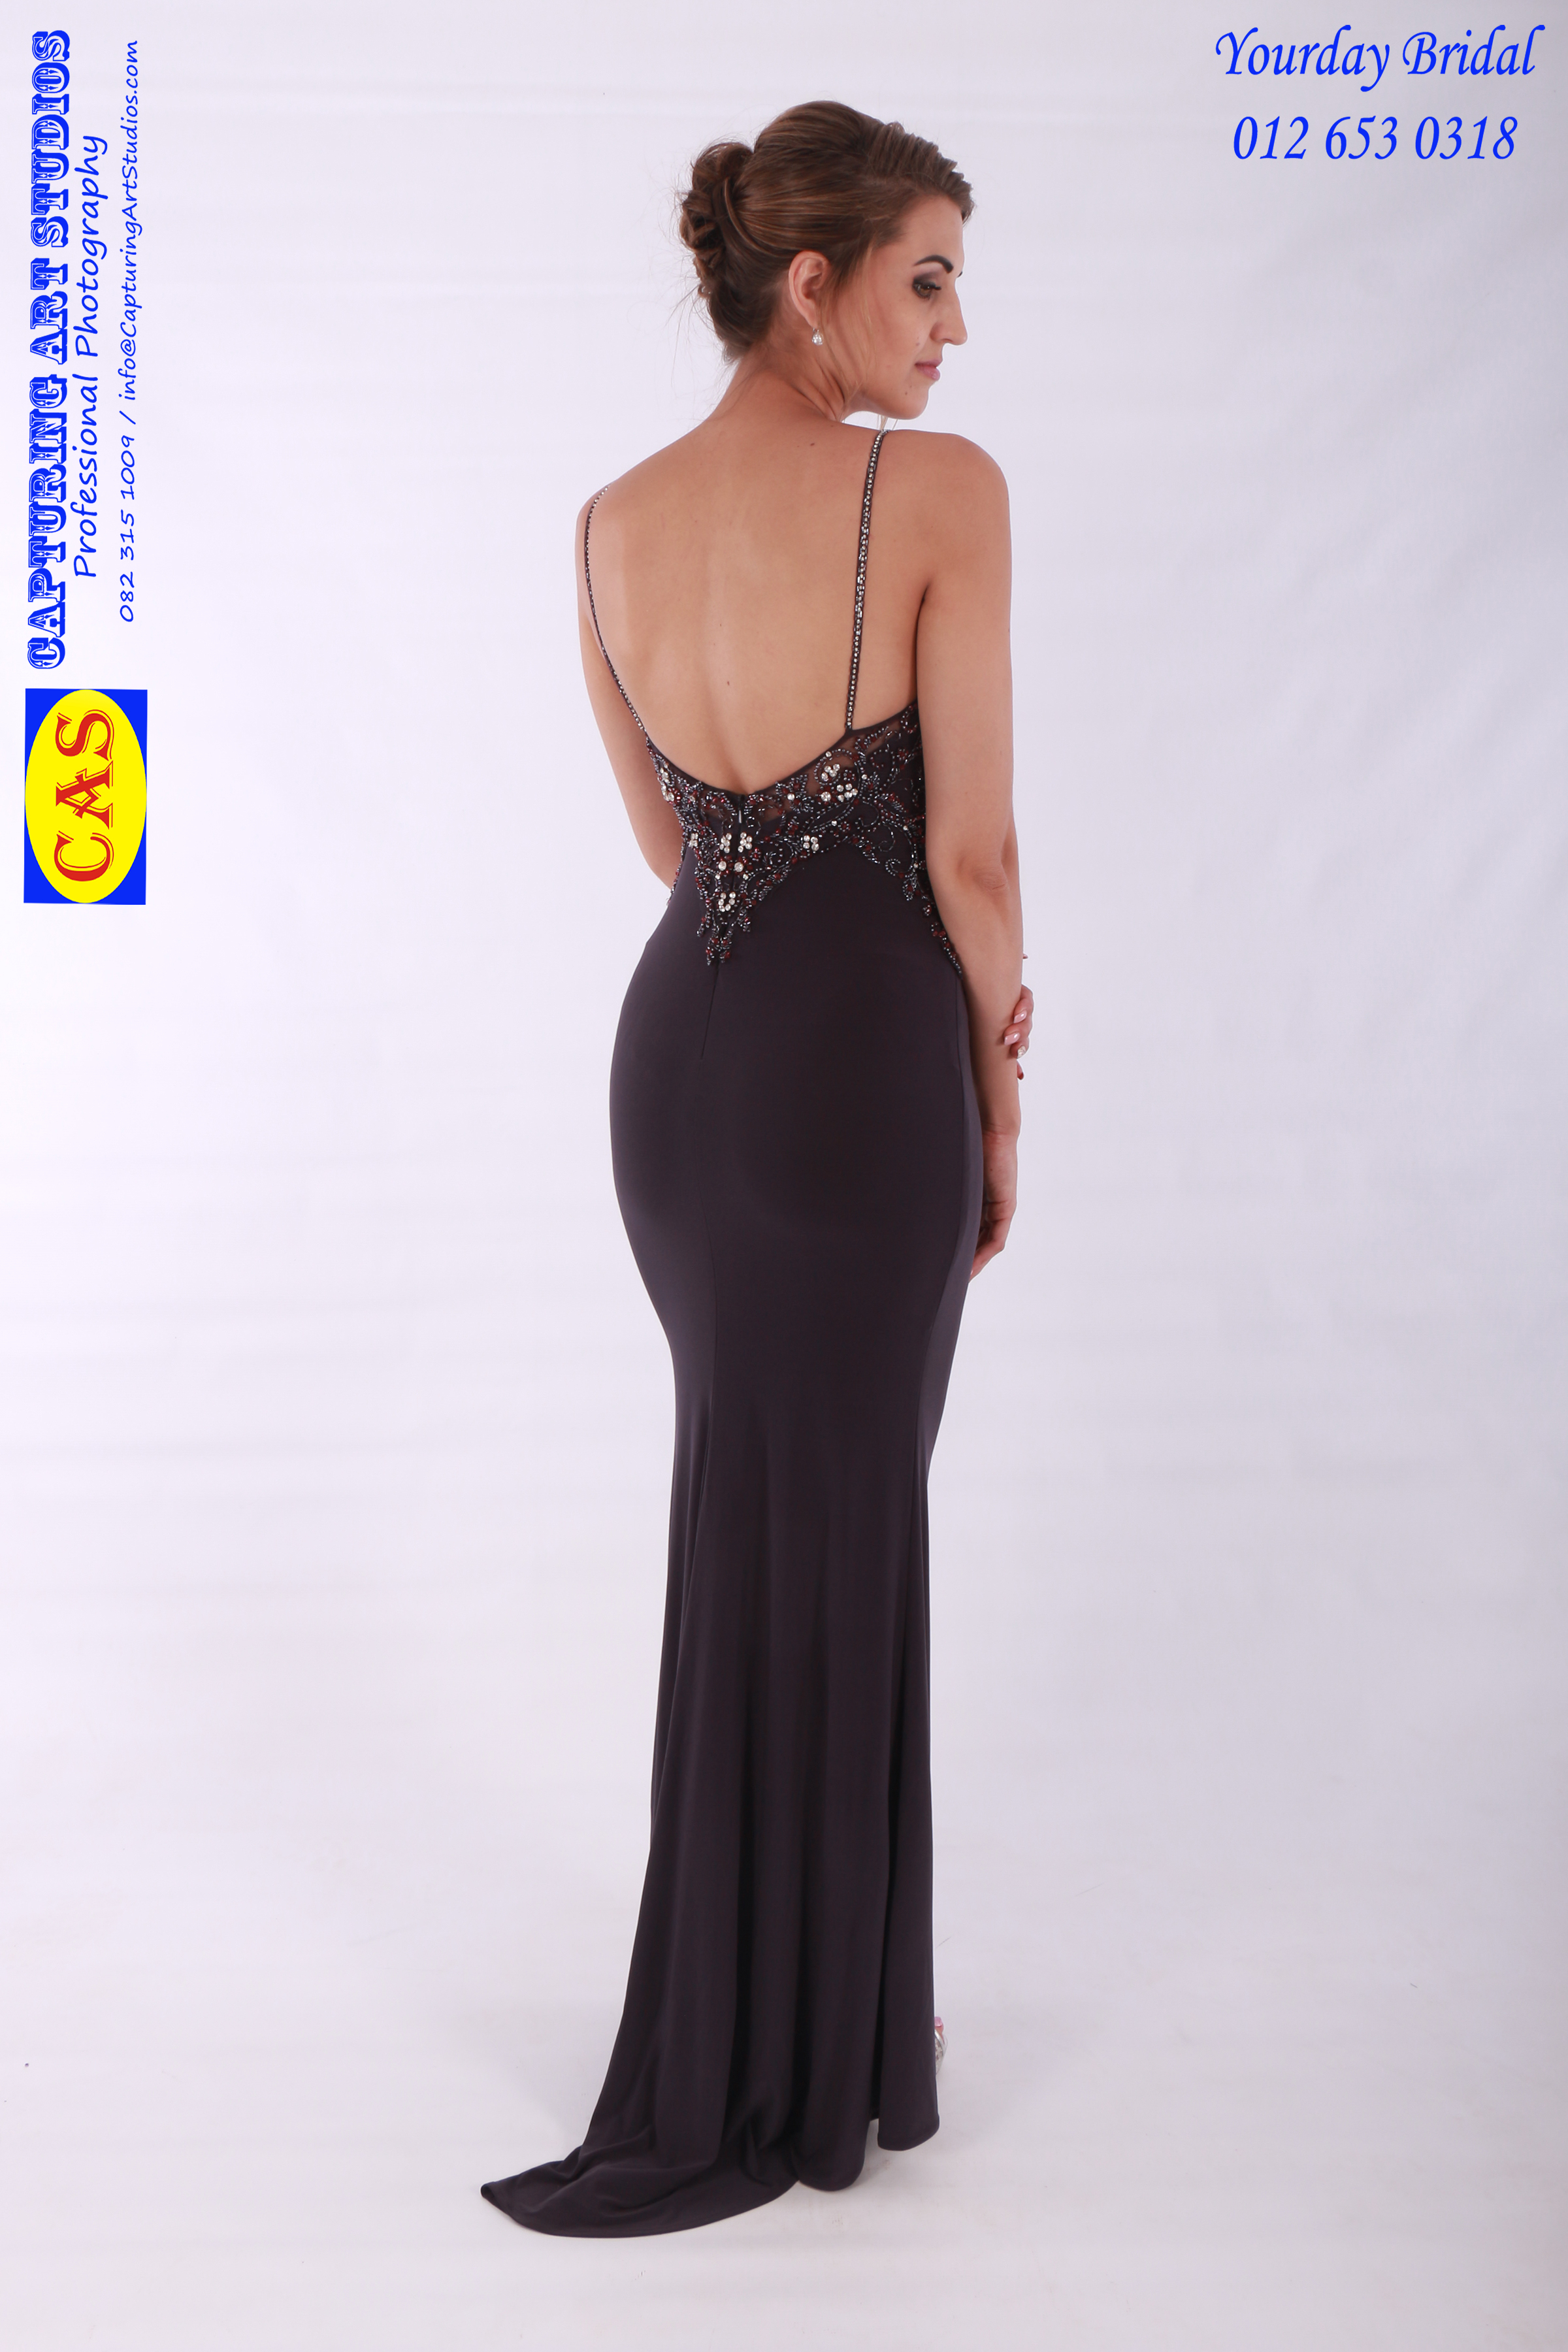 md84875-matric-farewelldance-dresses--matriekafskeidrokke-back